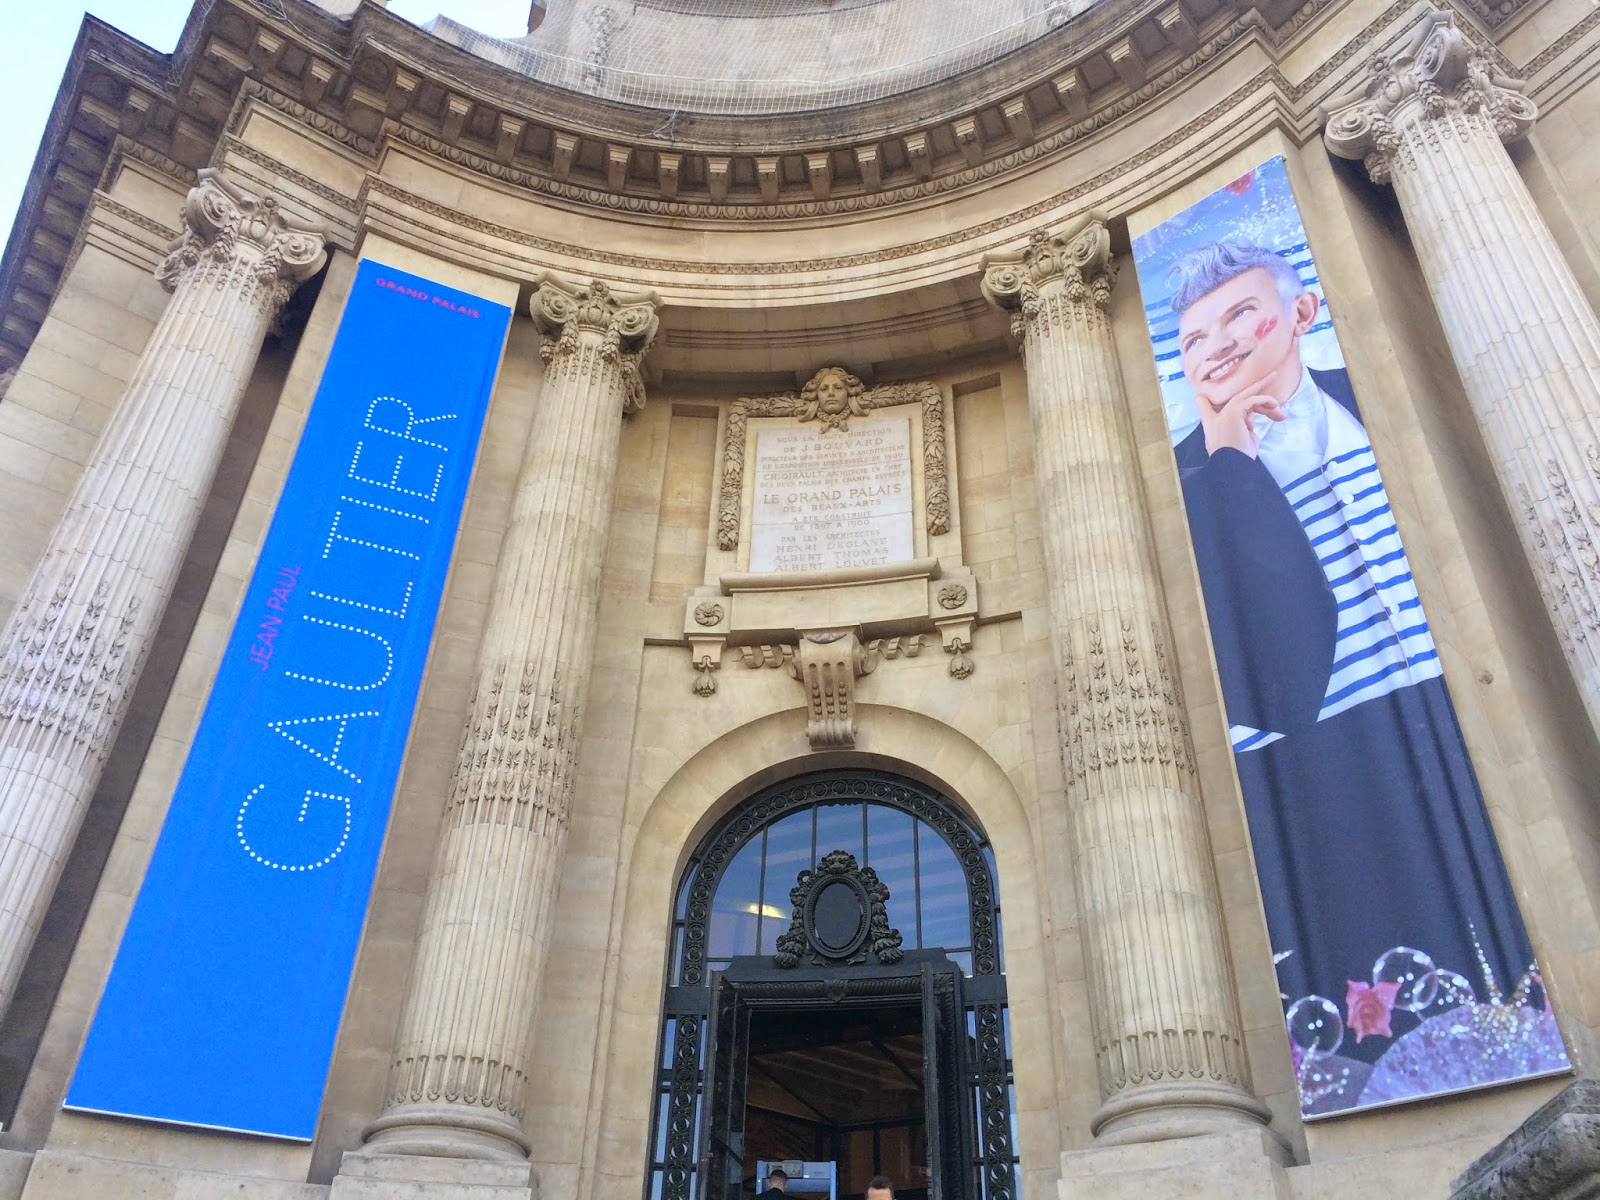 Entrance to the Jean Paul Gaultier exhibition at Le Grand Palais, Paris